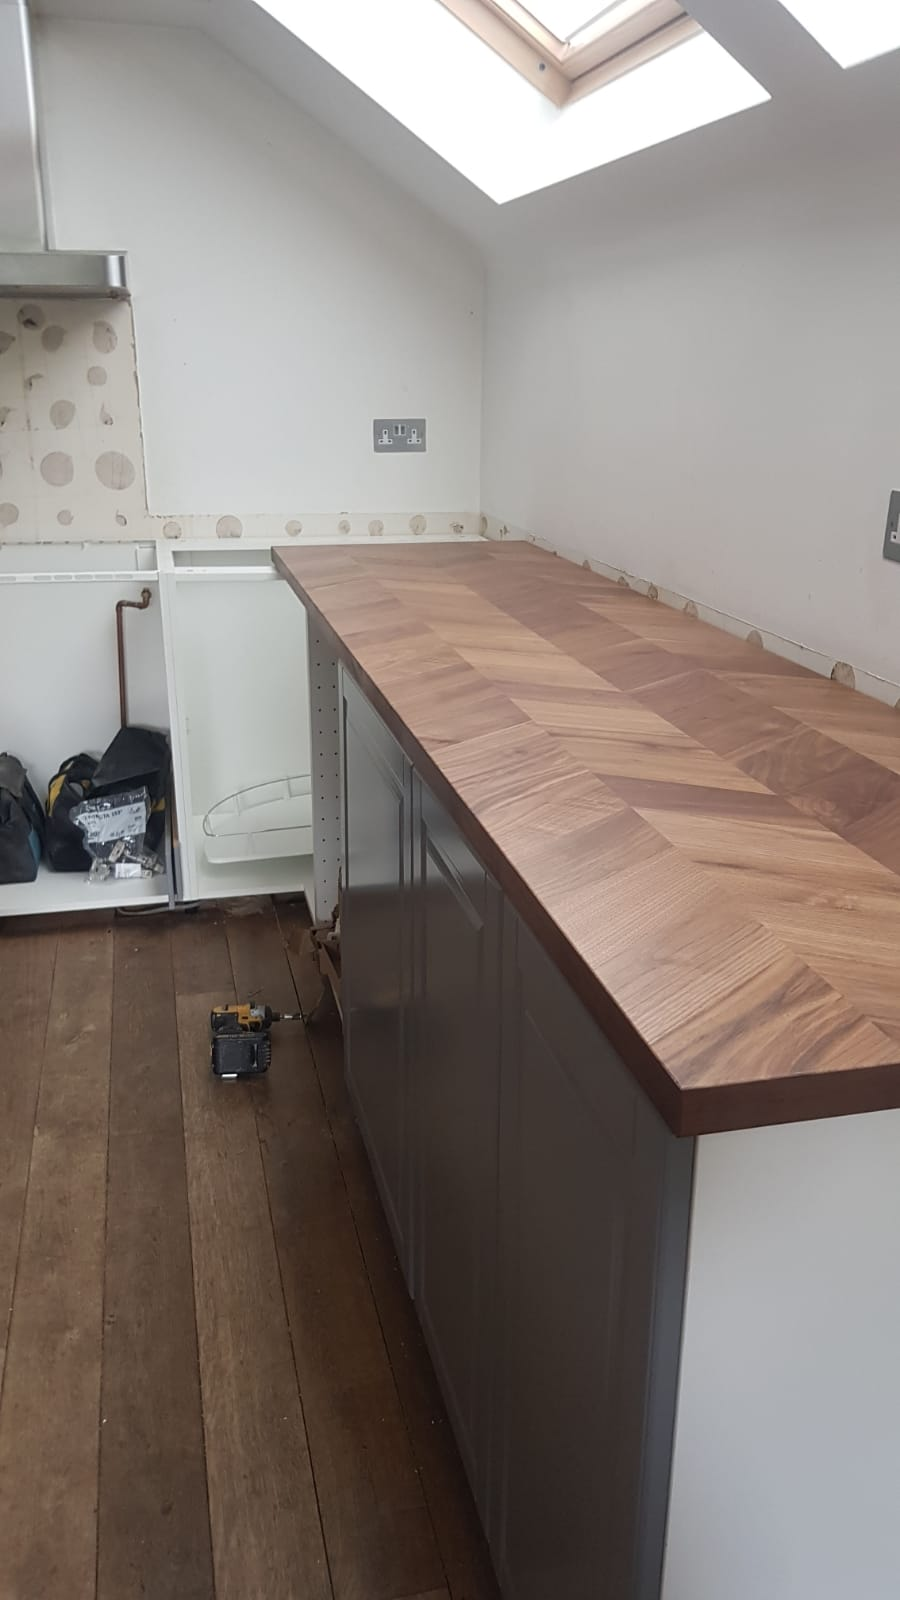 Richmond kitchen refurboshement